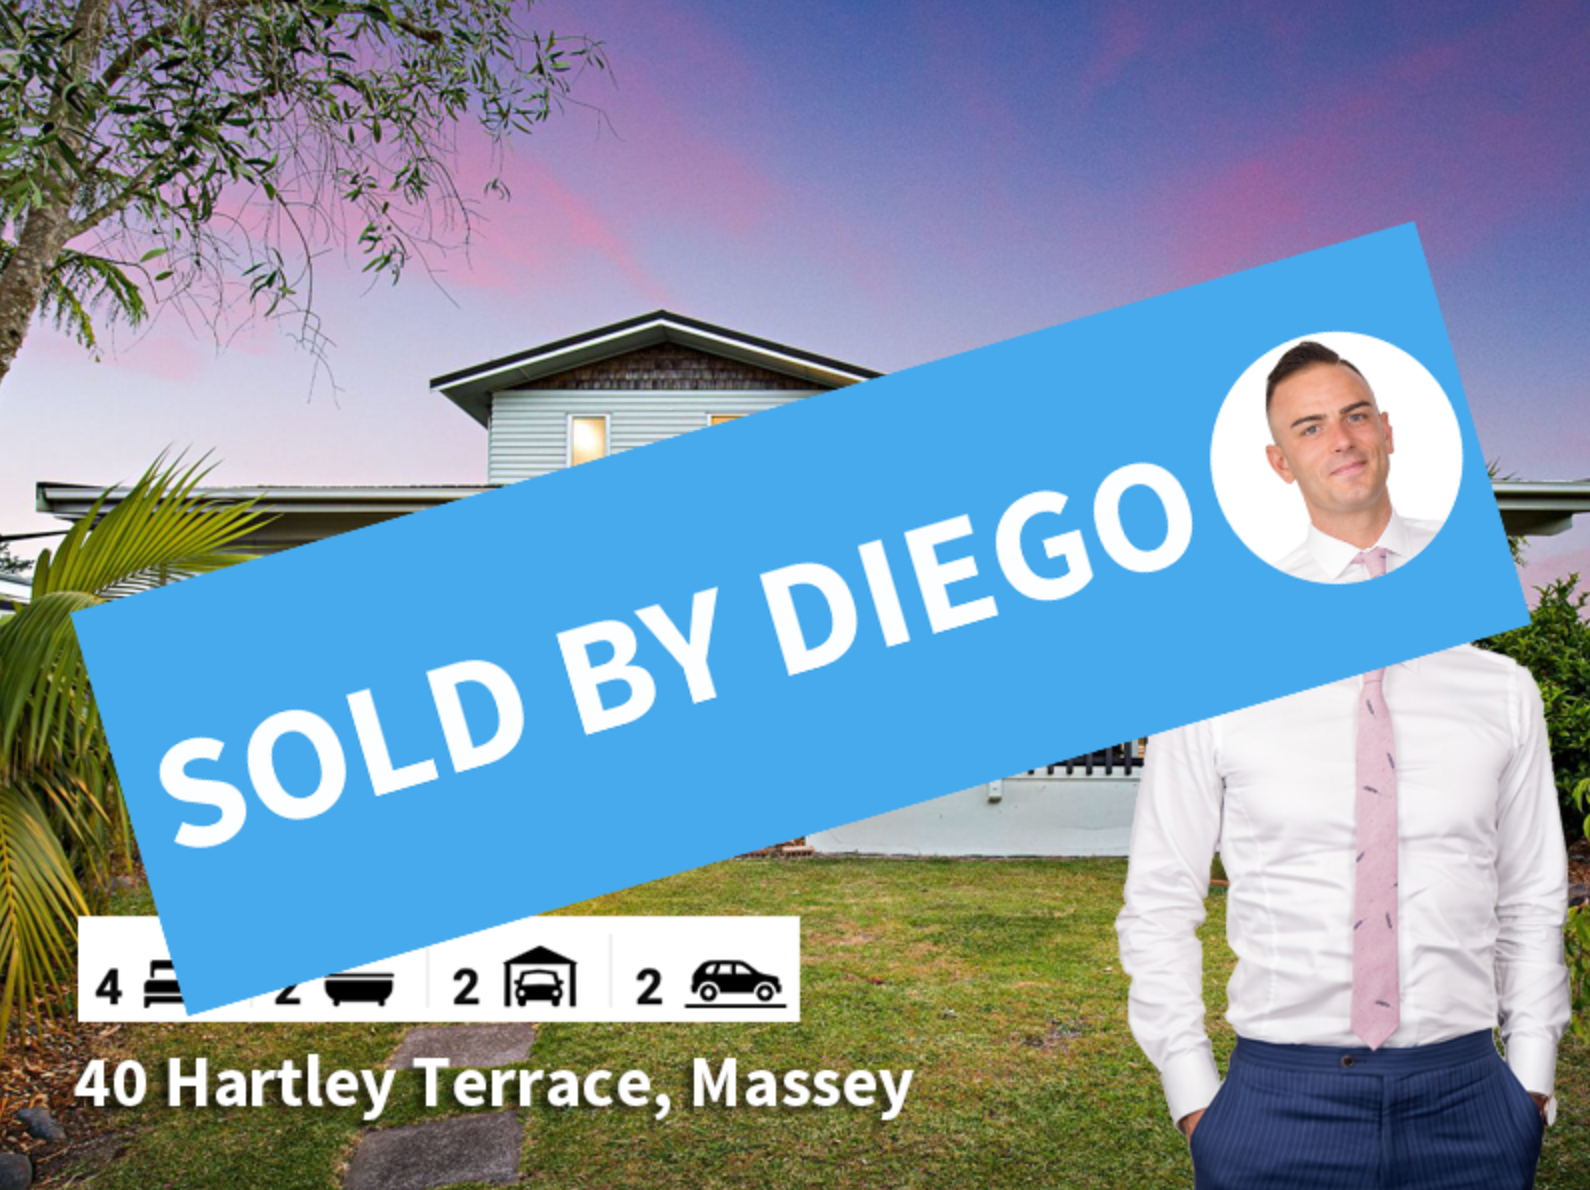 40 Hartley Terrace Massey SOLD by Diego